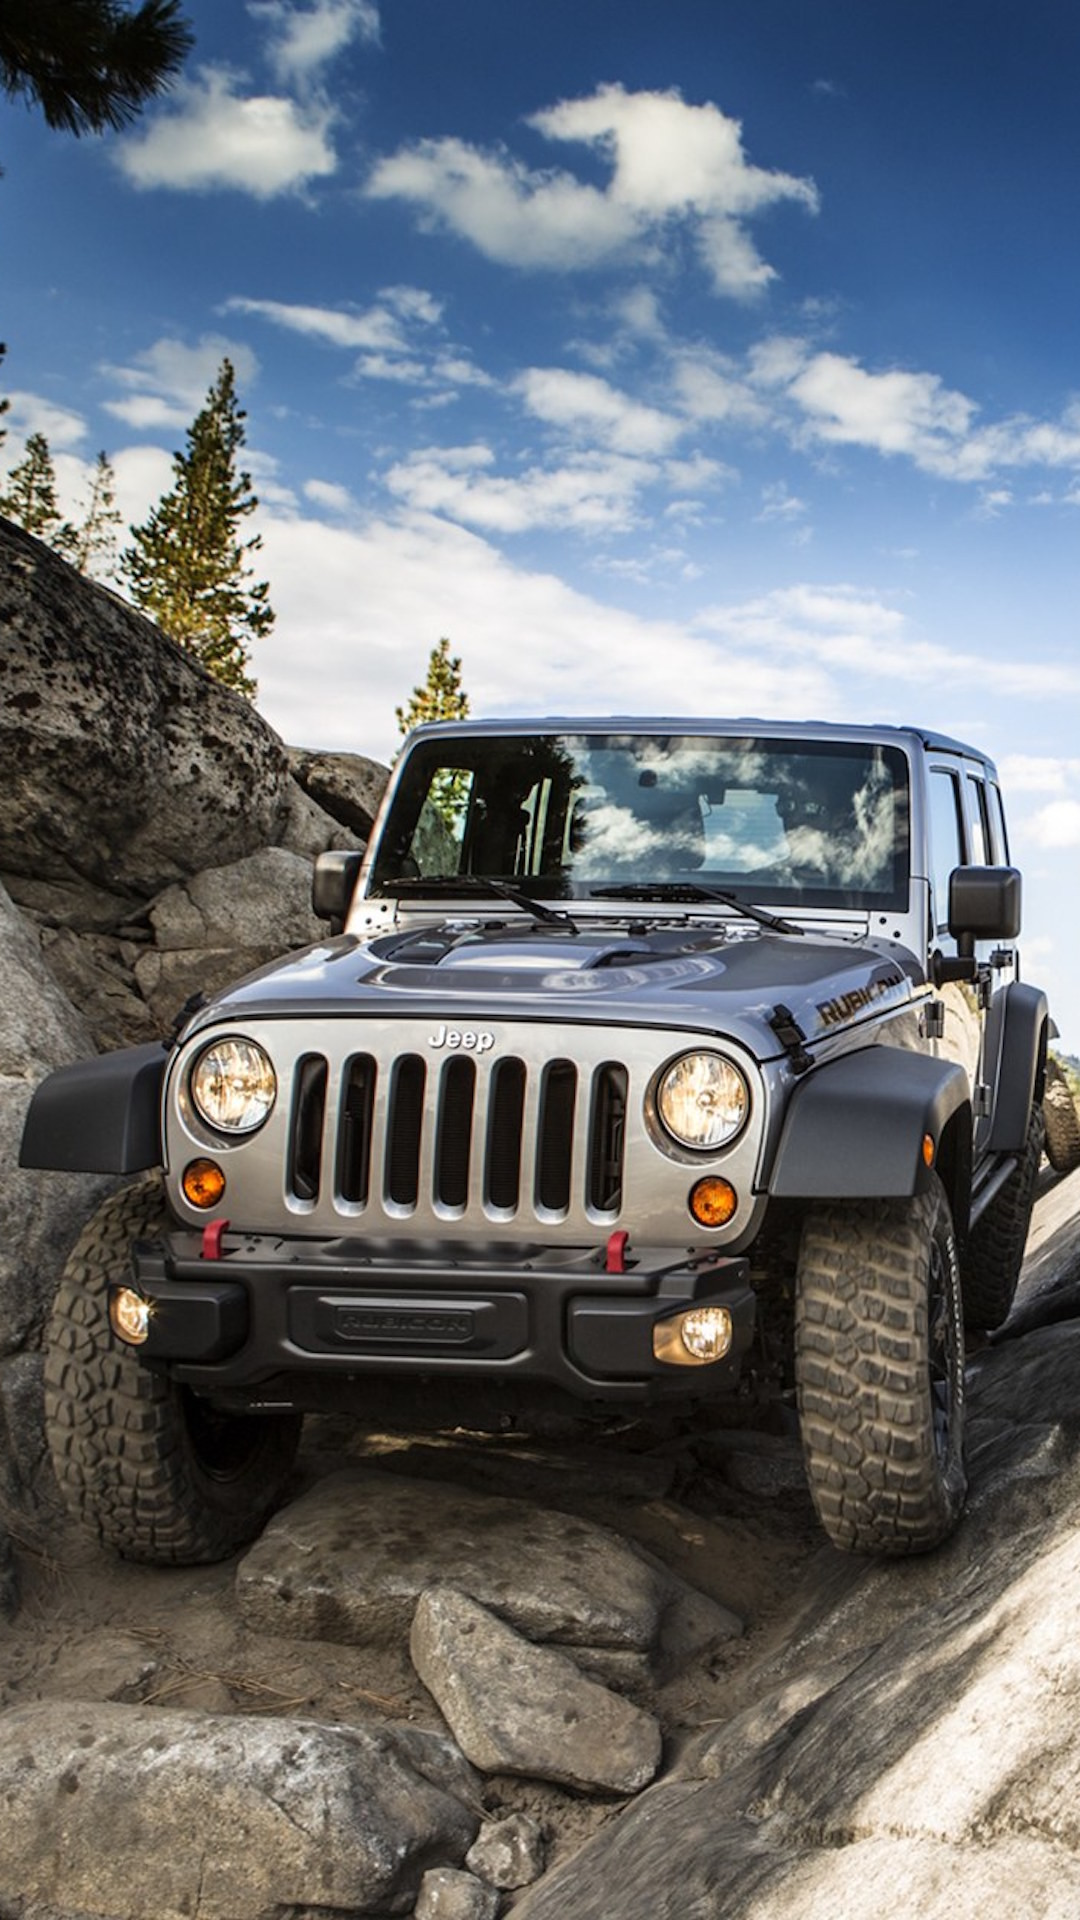 Res: 1080x1920, jeep wallpaper iphone screen desktop jeep wallpaper iphone ...